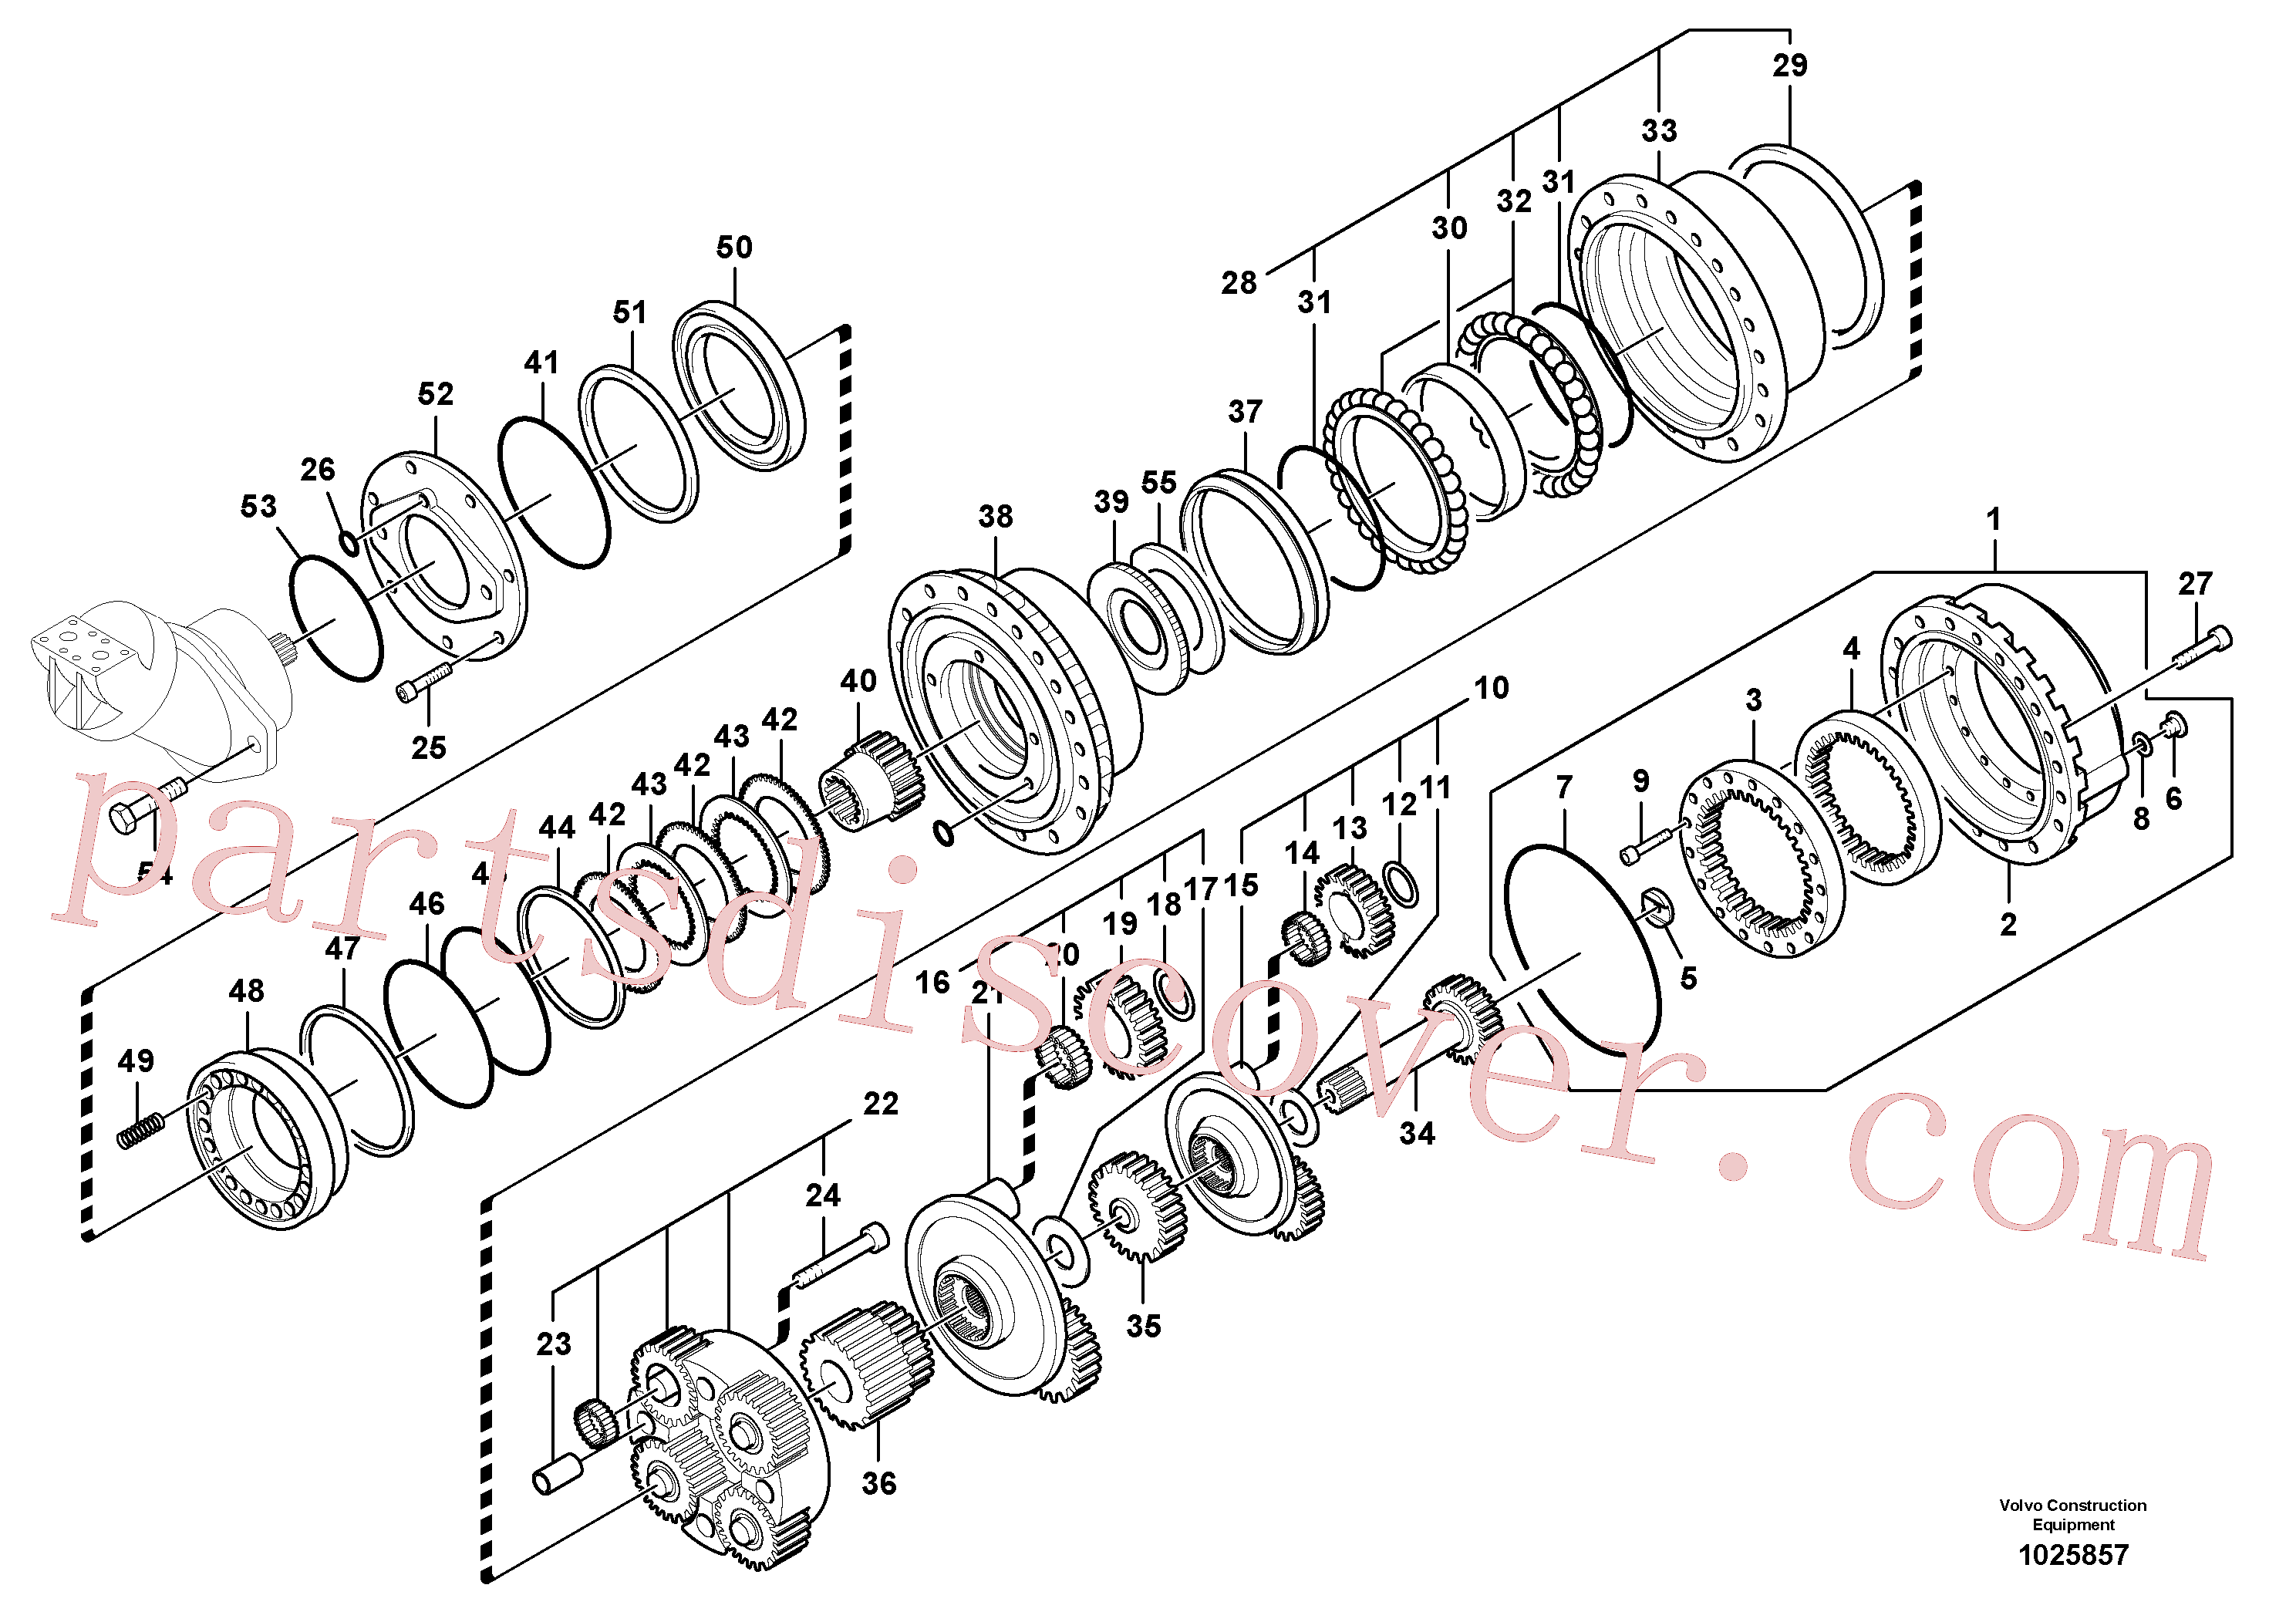 SA8230-22380 for Volvo Travel gearbox(1025857 assembly)